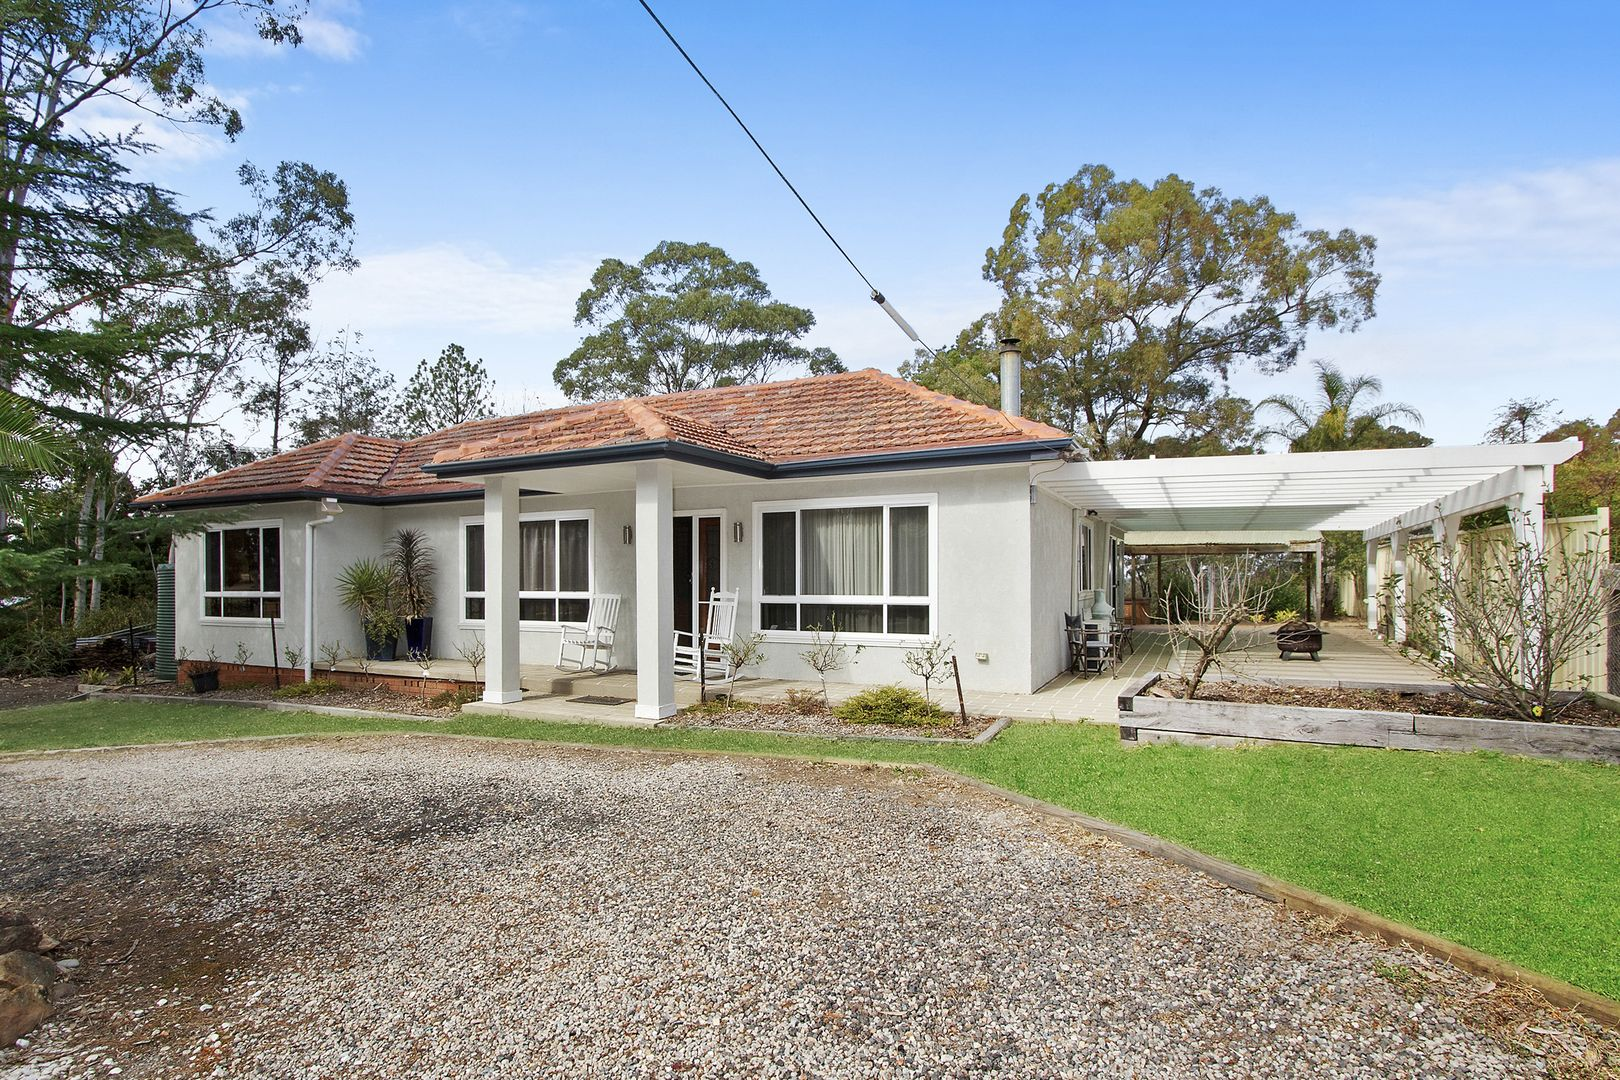 236 Blaxlands Ridge Road, Blaxlands Ridge NSW 2758, Image 0